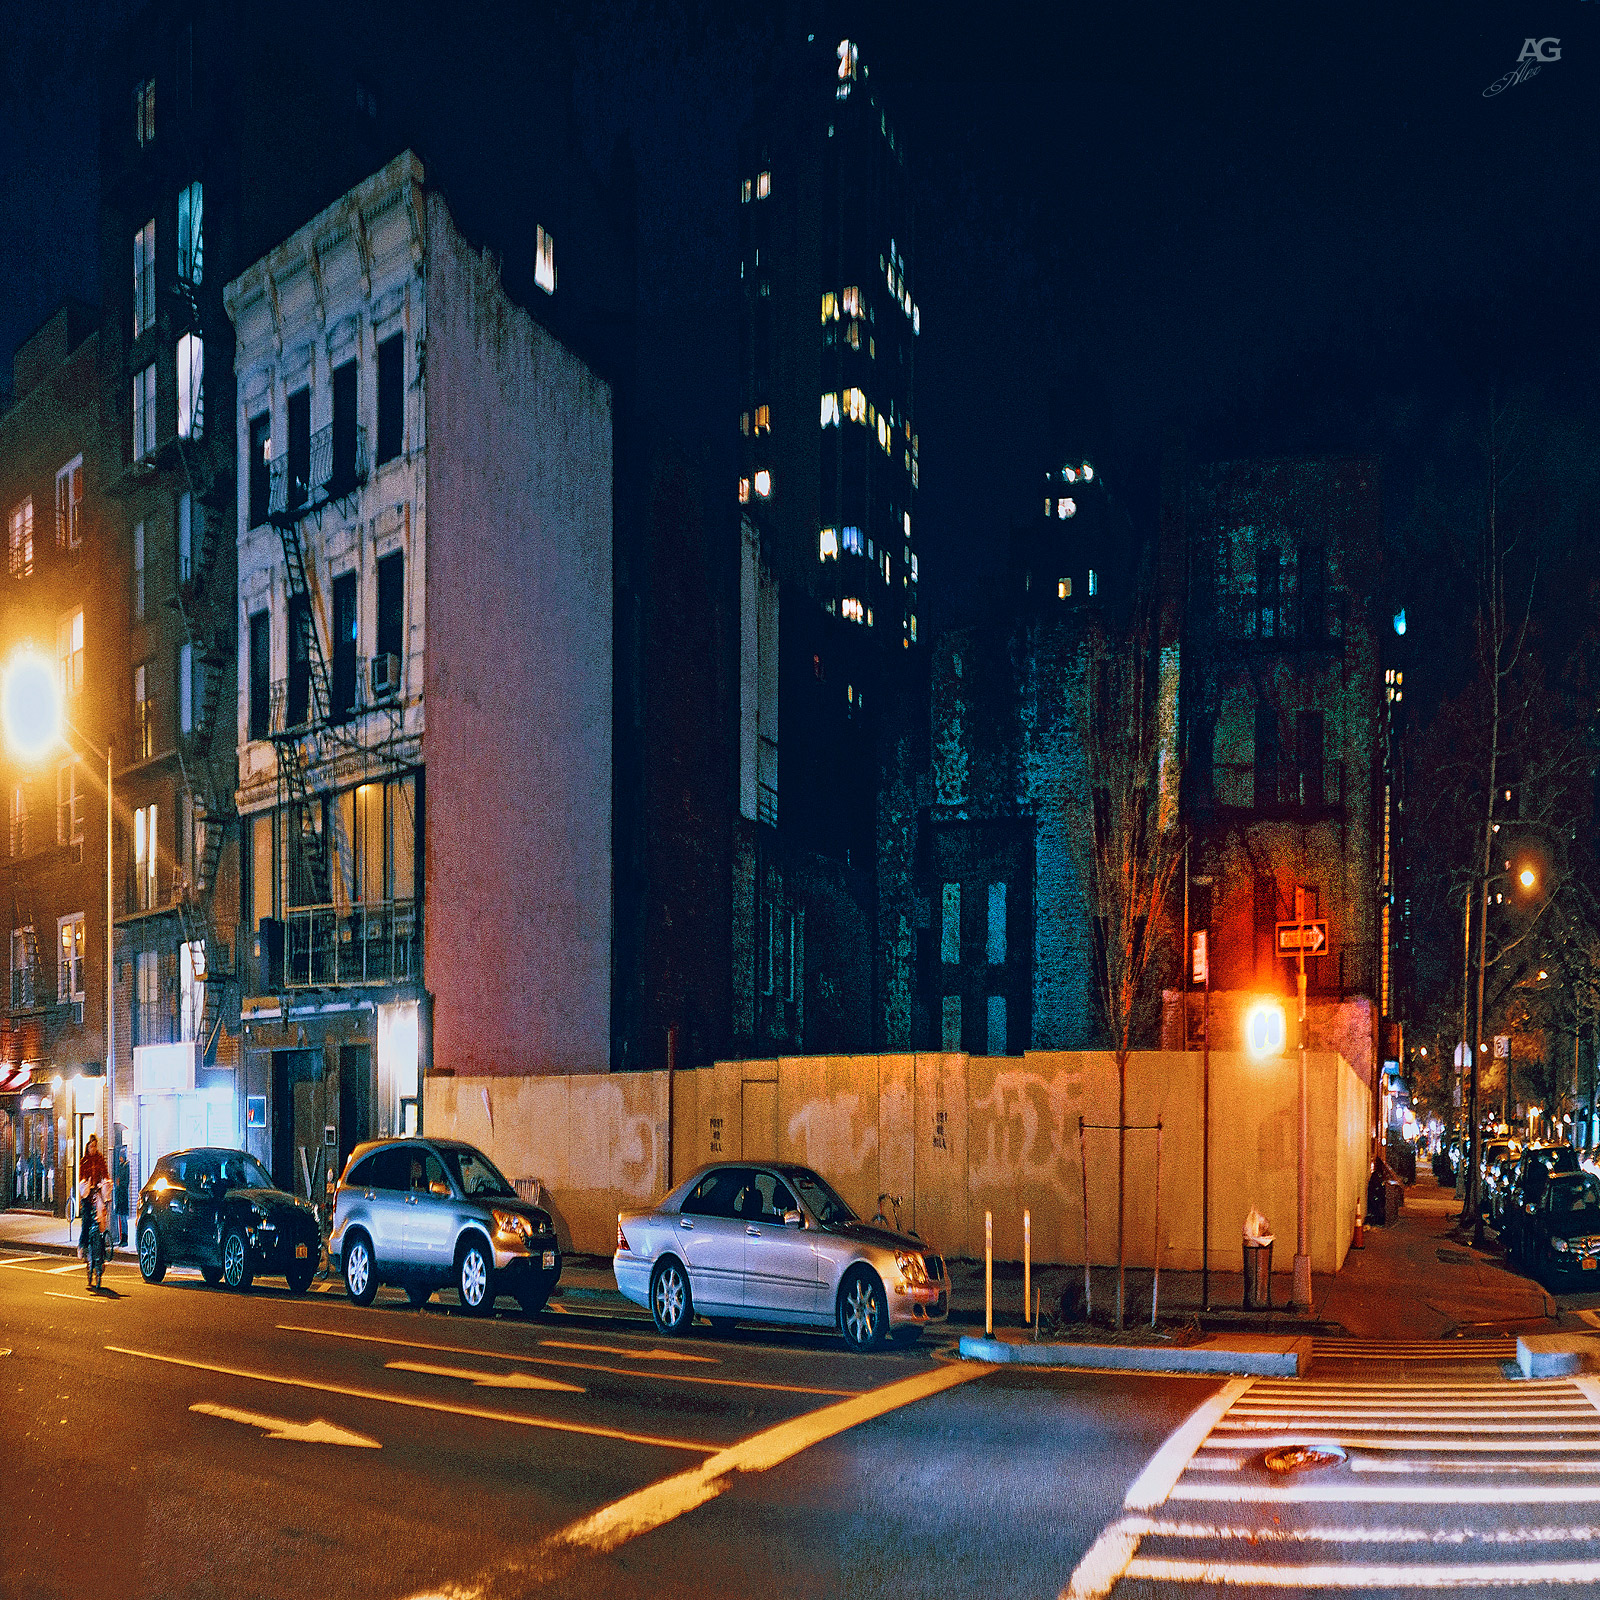 NightManhattanAround80sEastSide_squished_1600